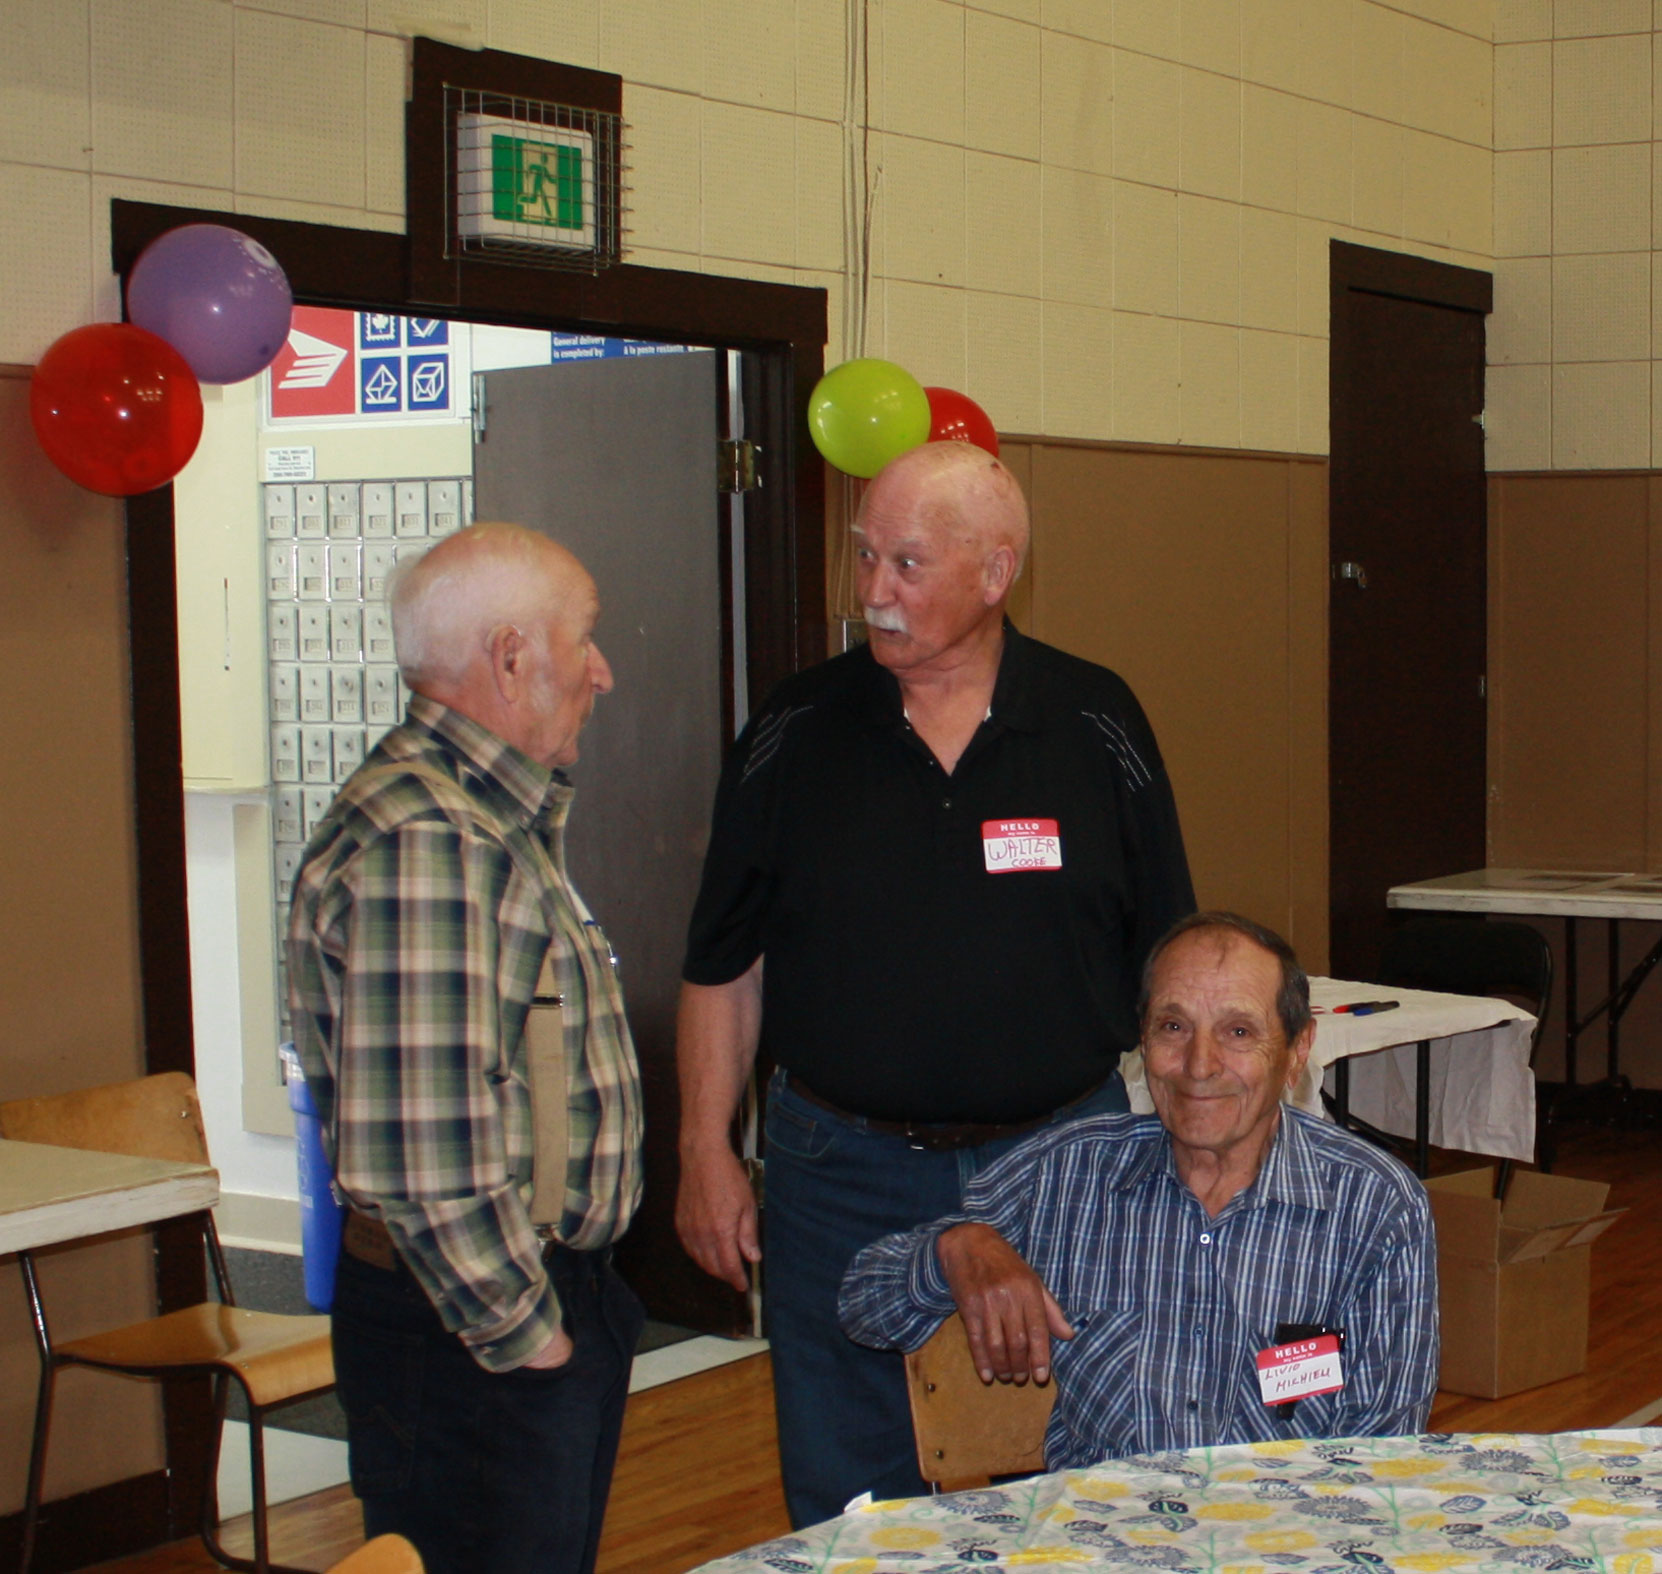 Bob Crawford at the Hillcrest Lumber Co. Employees Reunion in May 2018. (photo courtesy of Cecil Ashley)